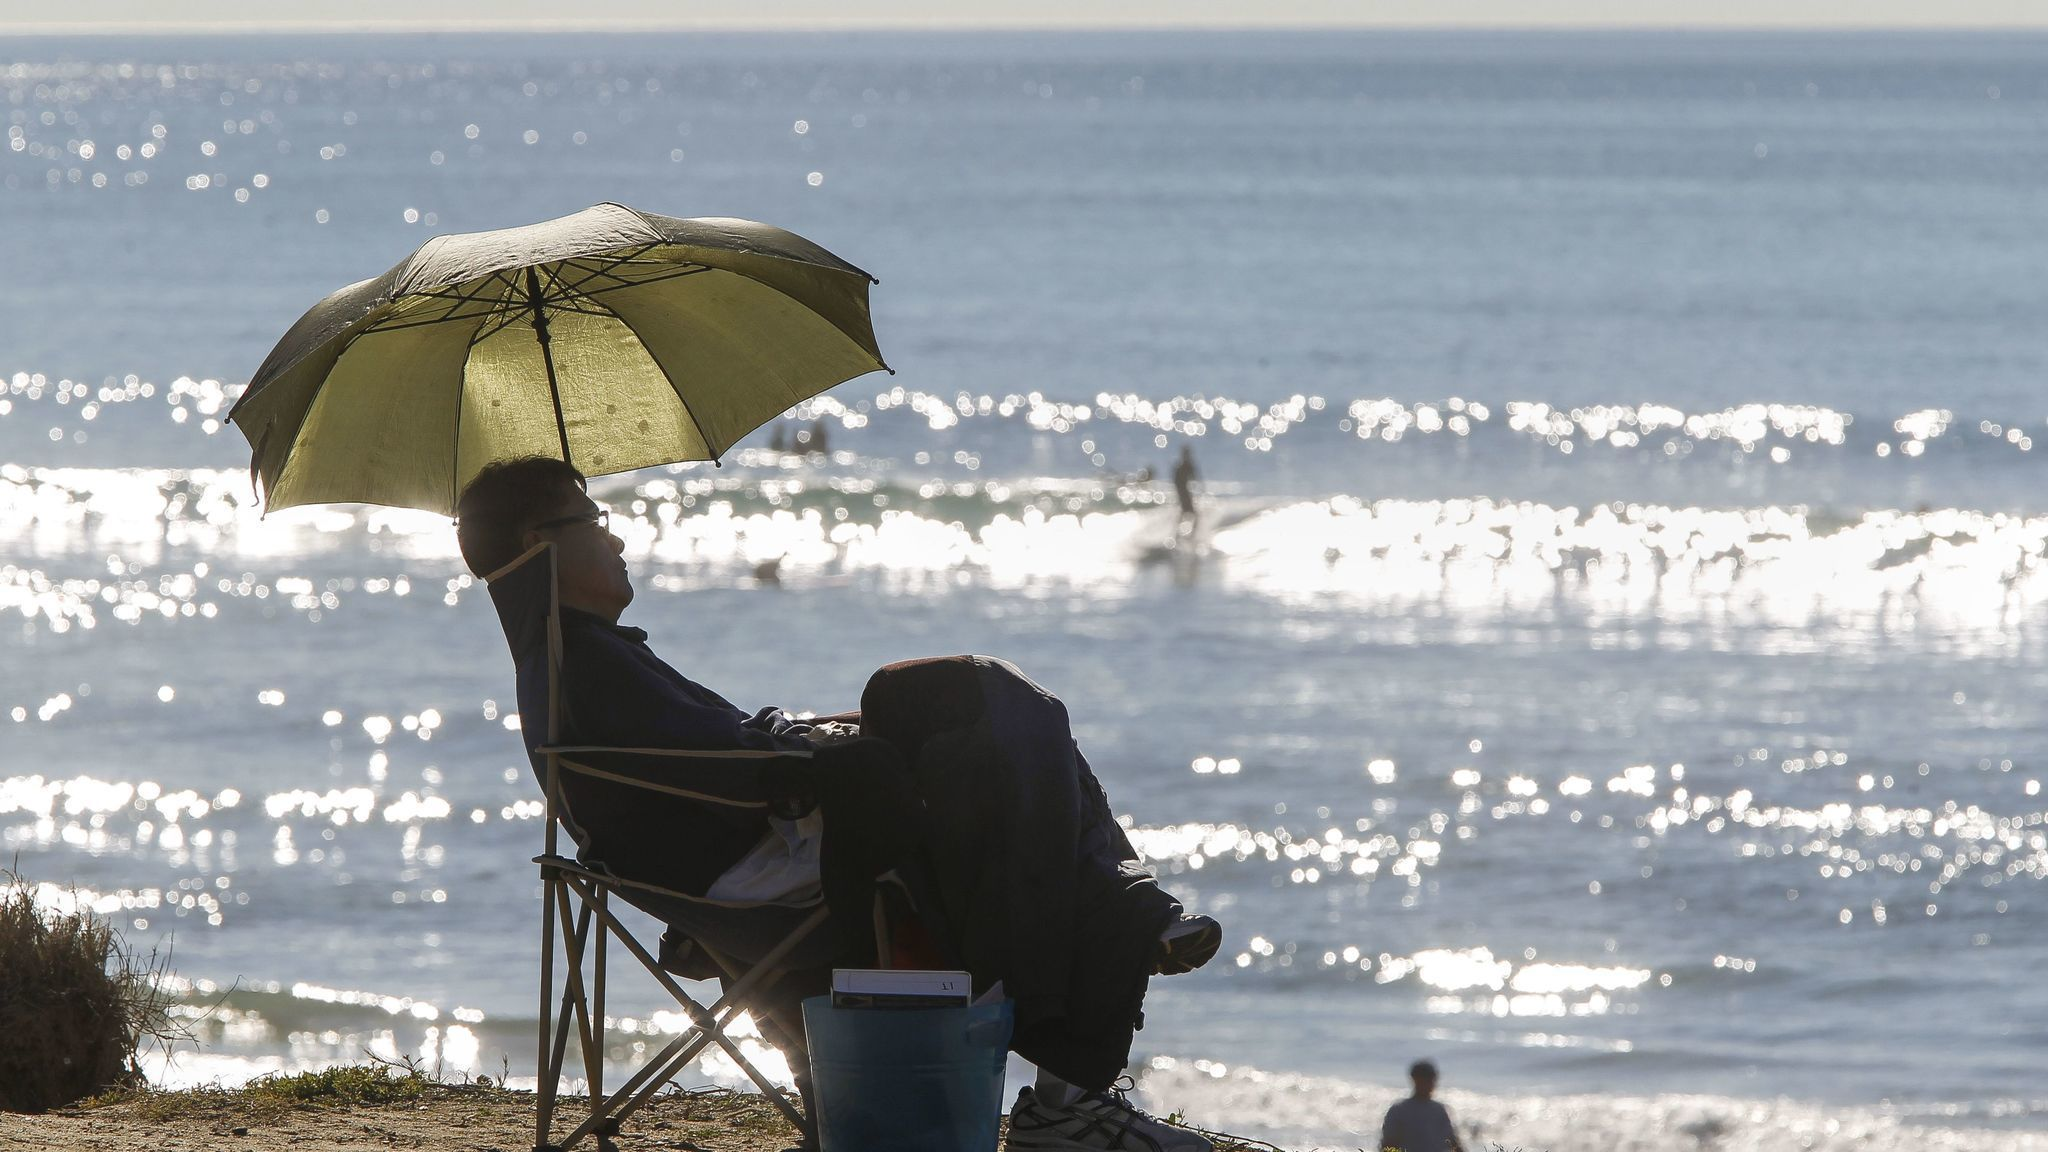 Del Mar Says Vacation Rentals Illegal In Residential Area